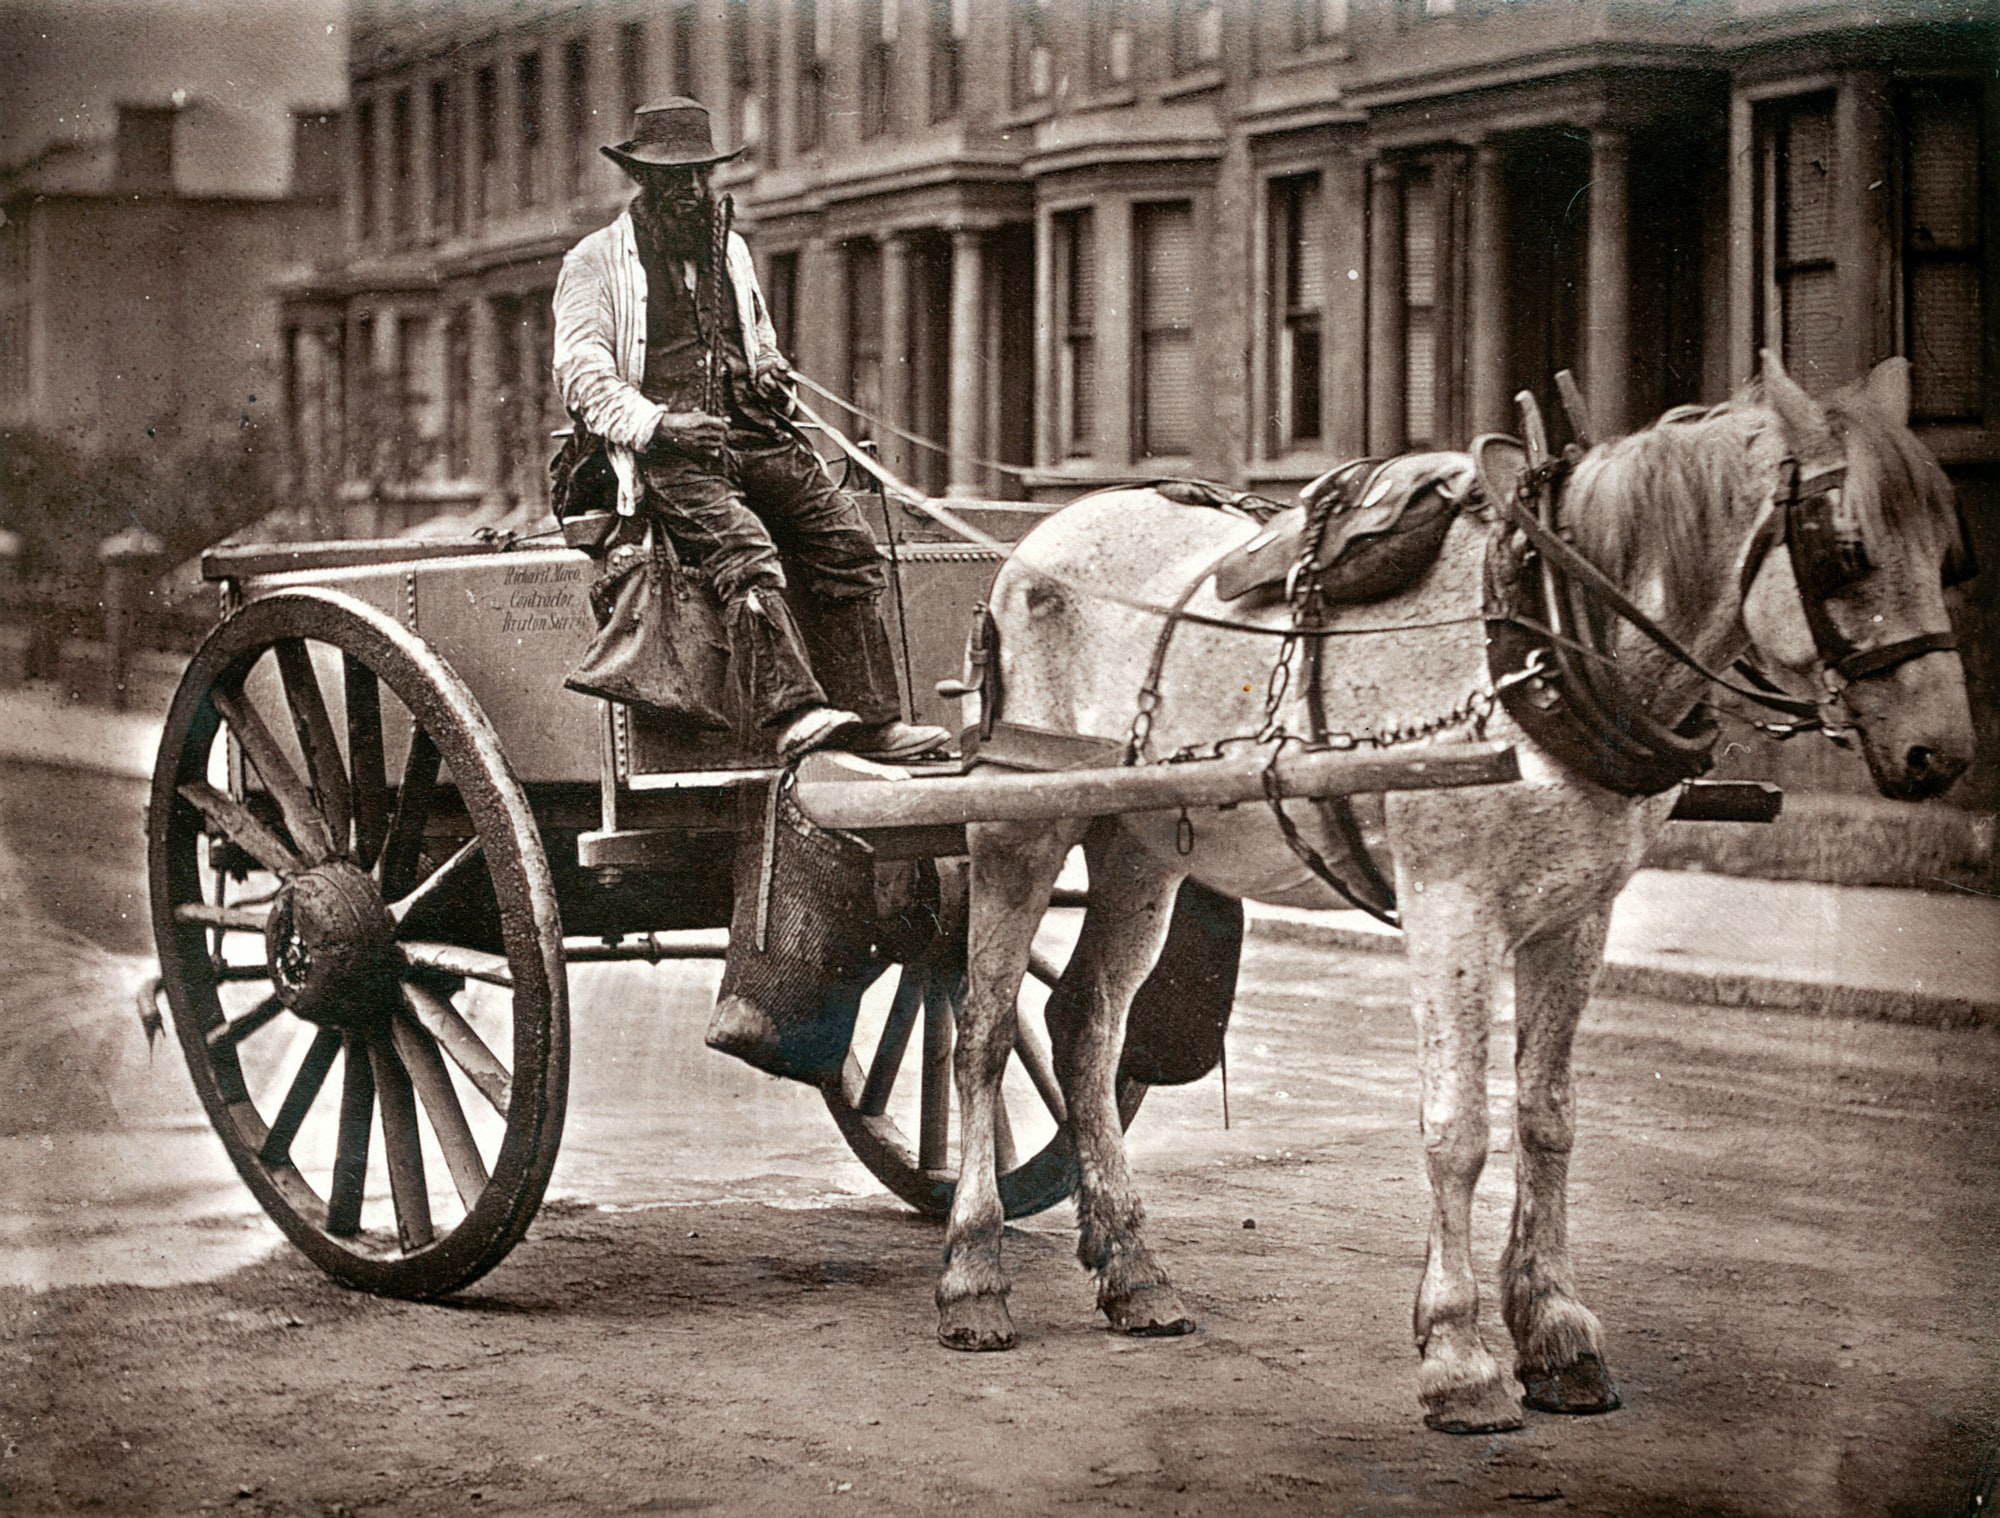 The Water-Cart. From 'Street Life in London', 1877, by John Thomson and Adolphe Smith.